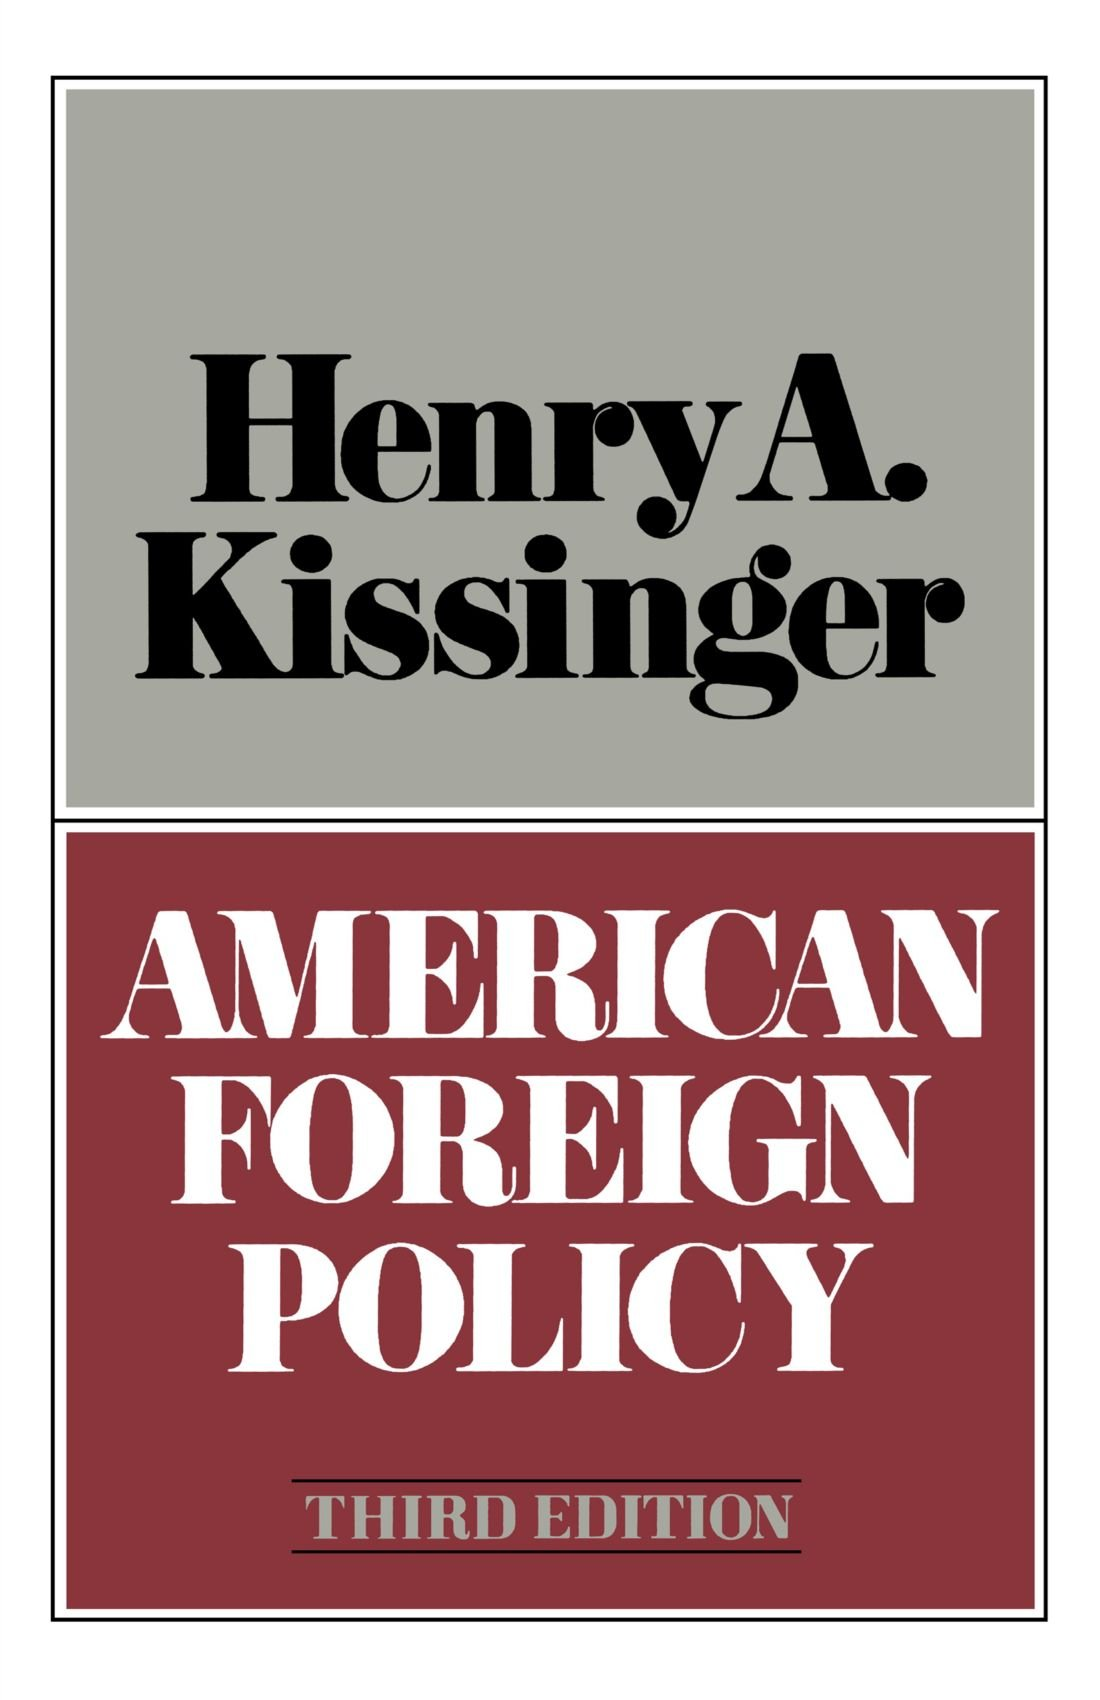 american foreign policy third edition henry kissinger american foreign policy third edition henry kissinger 9780393056419 com books